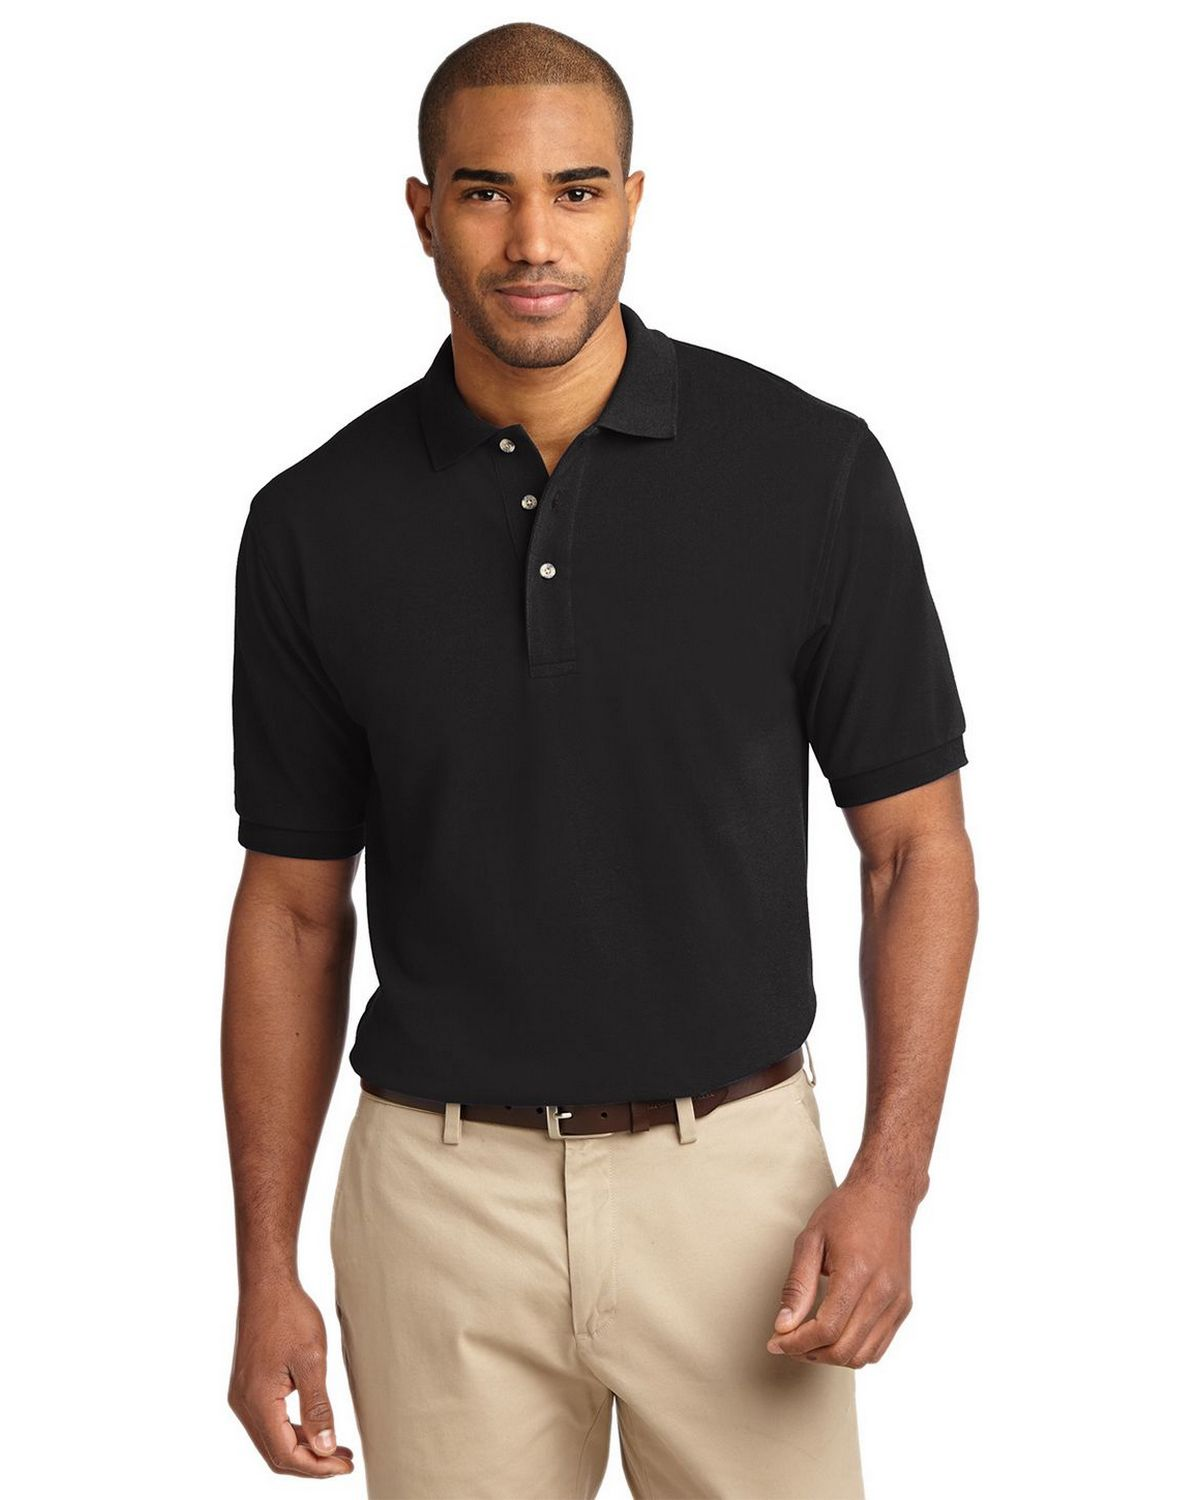 Port Authority K420 Mens Pique Knit Polo - Black - XS